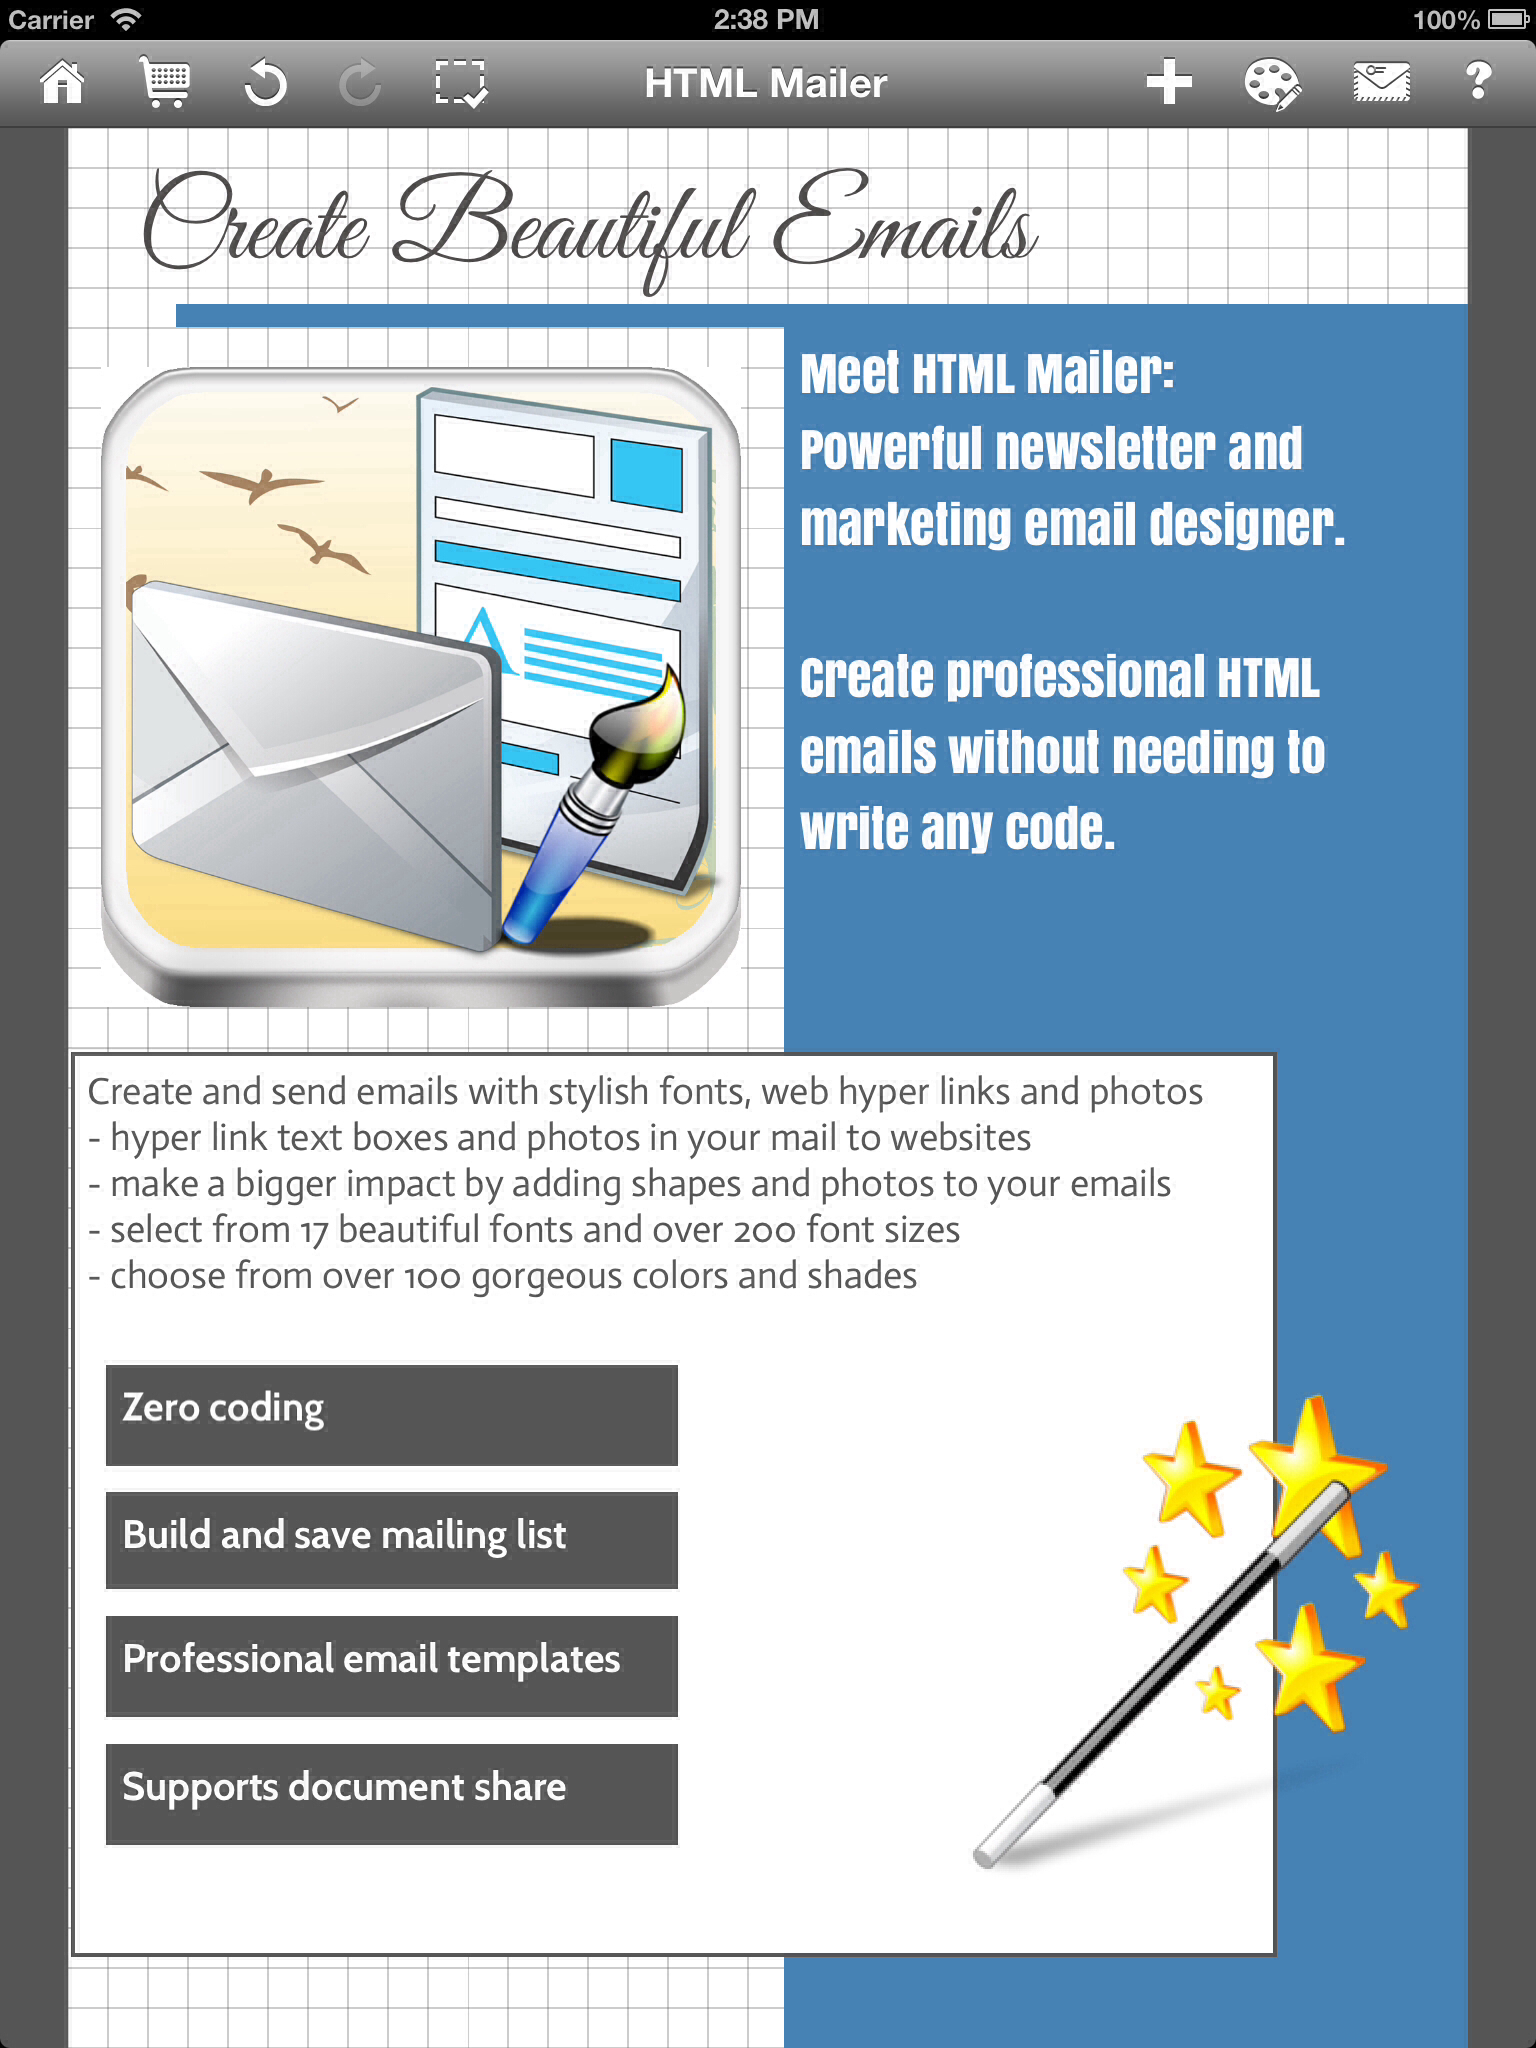 What is HTML Mailer?